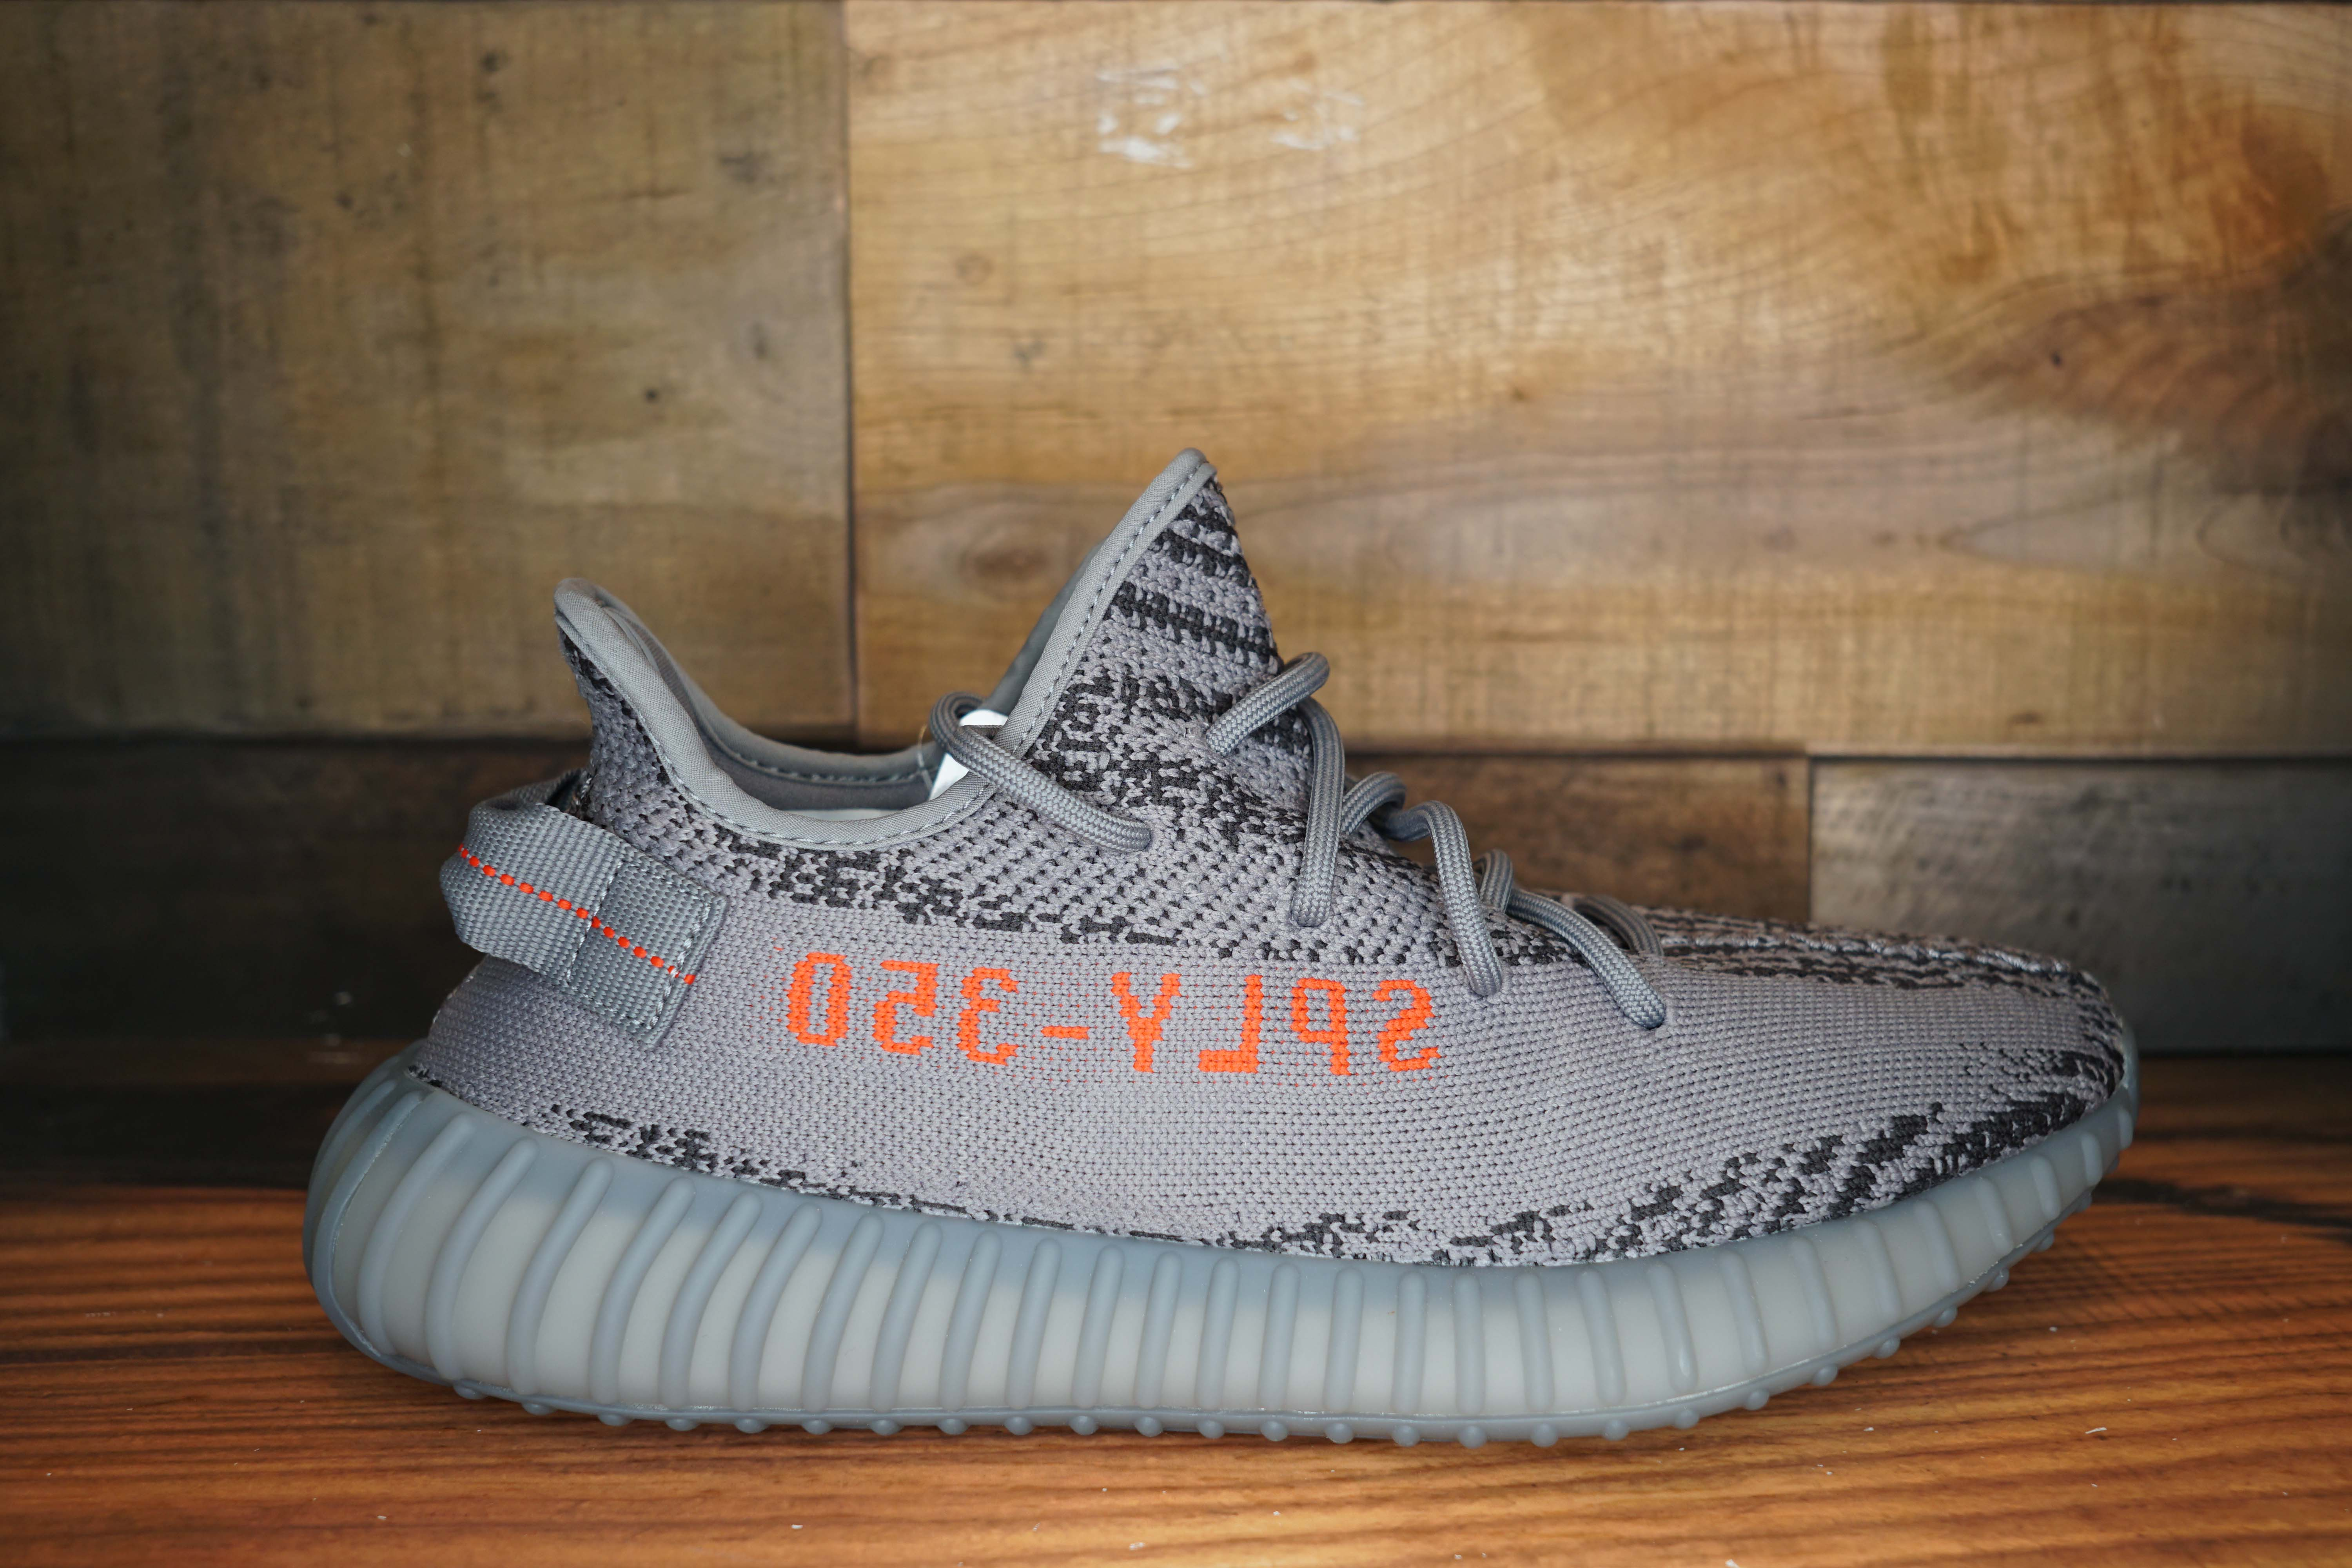 cc3be38be3f Adidas Yeezy Boost 350 V2